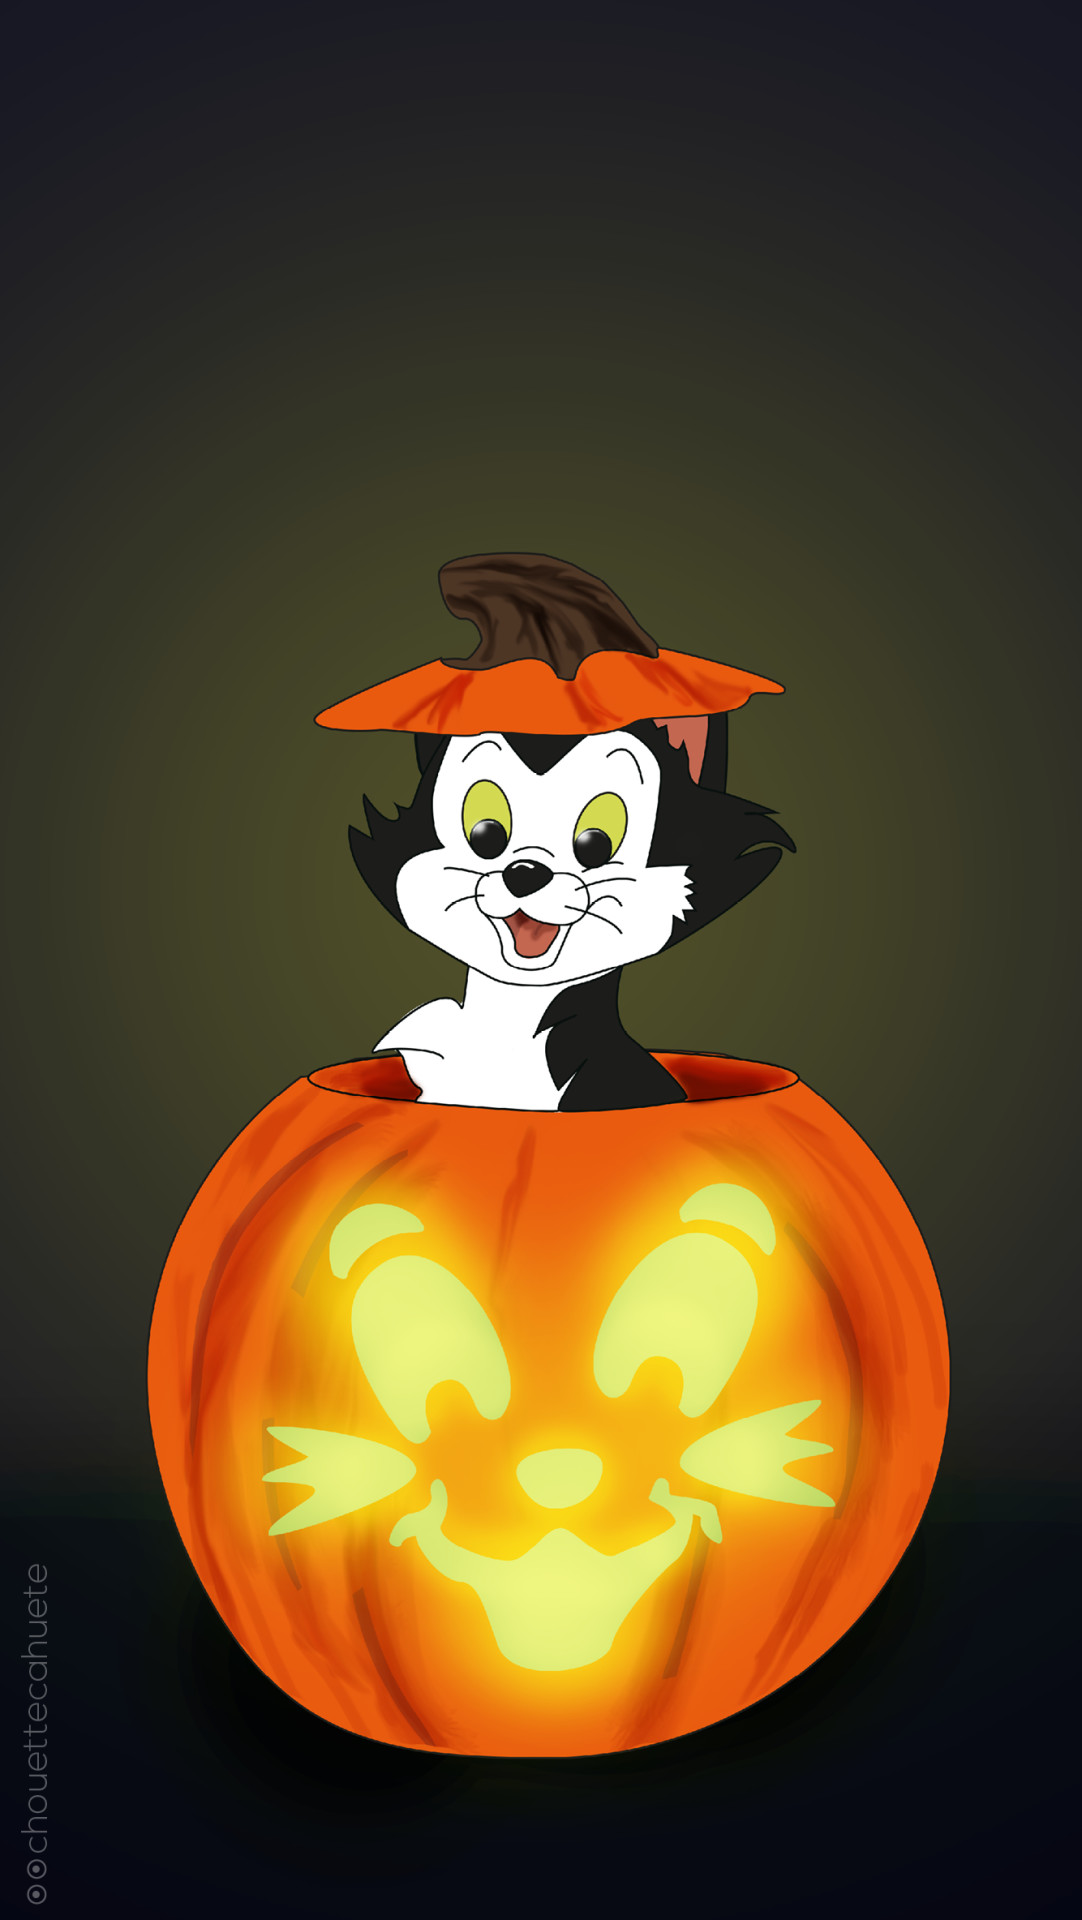 Free Download Disney Halloween Wallpaper Backgrounds 65 Images 1082x1920 For Your Desktop Mobile Tablet Explore 44 Scary Mickey Mouse Wallpapers Scary Mickey Mouse Wallpapers Mickey Mouse Background Mickey Mouse Wallpaper